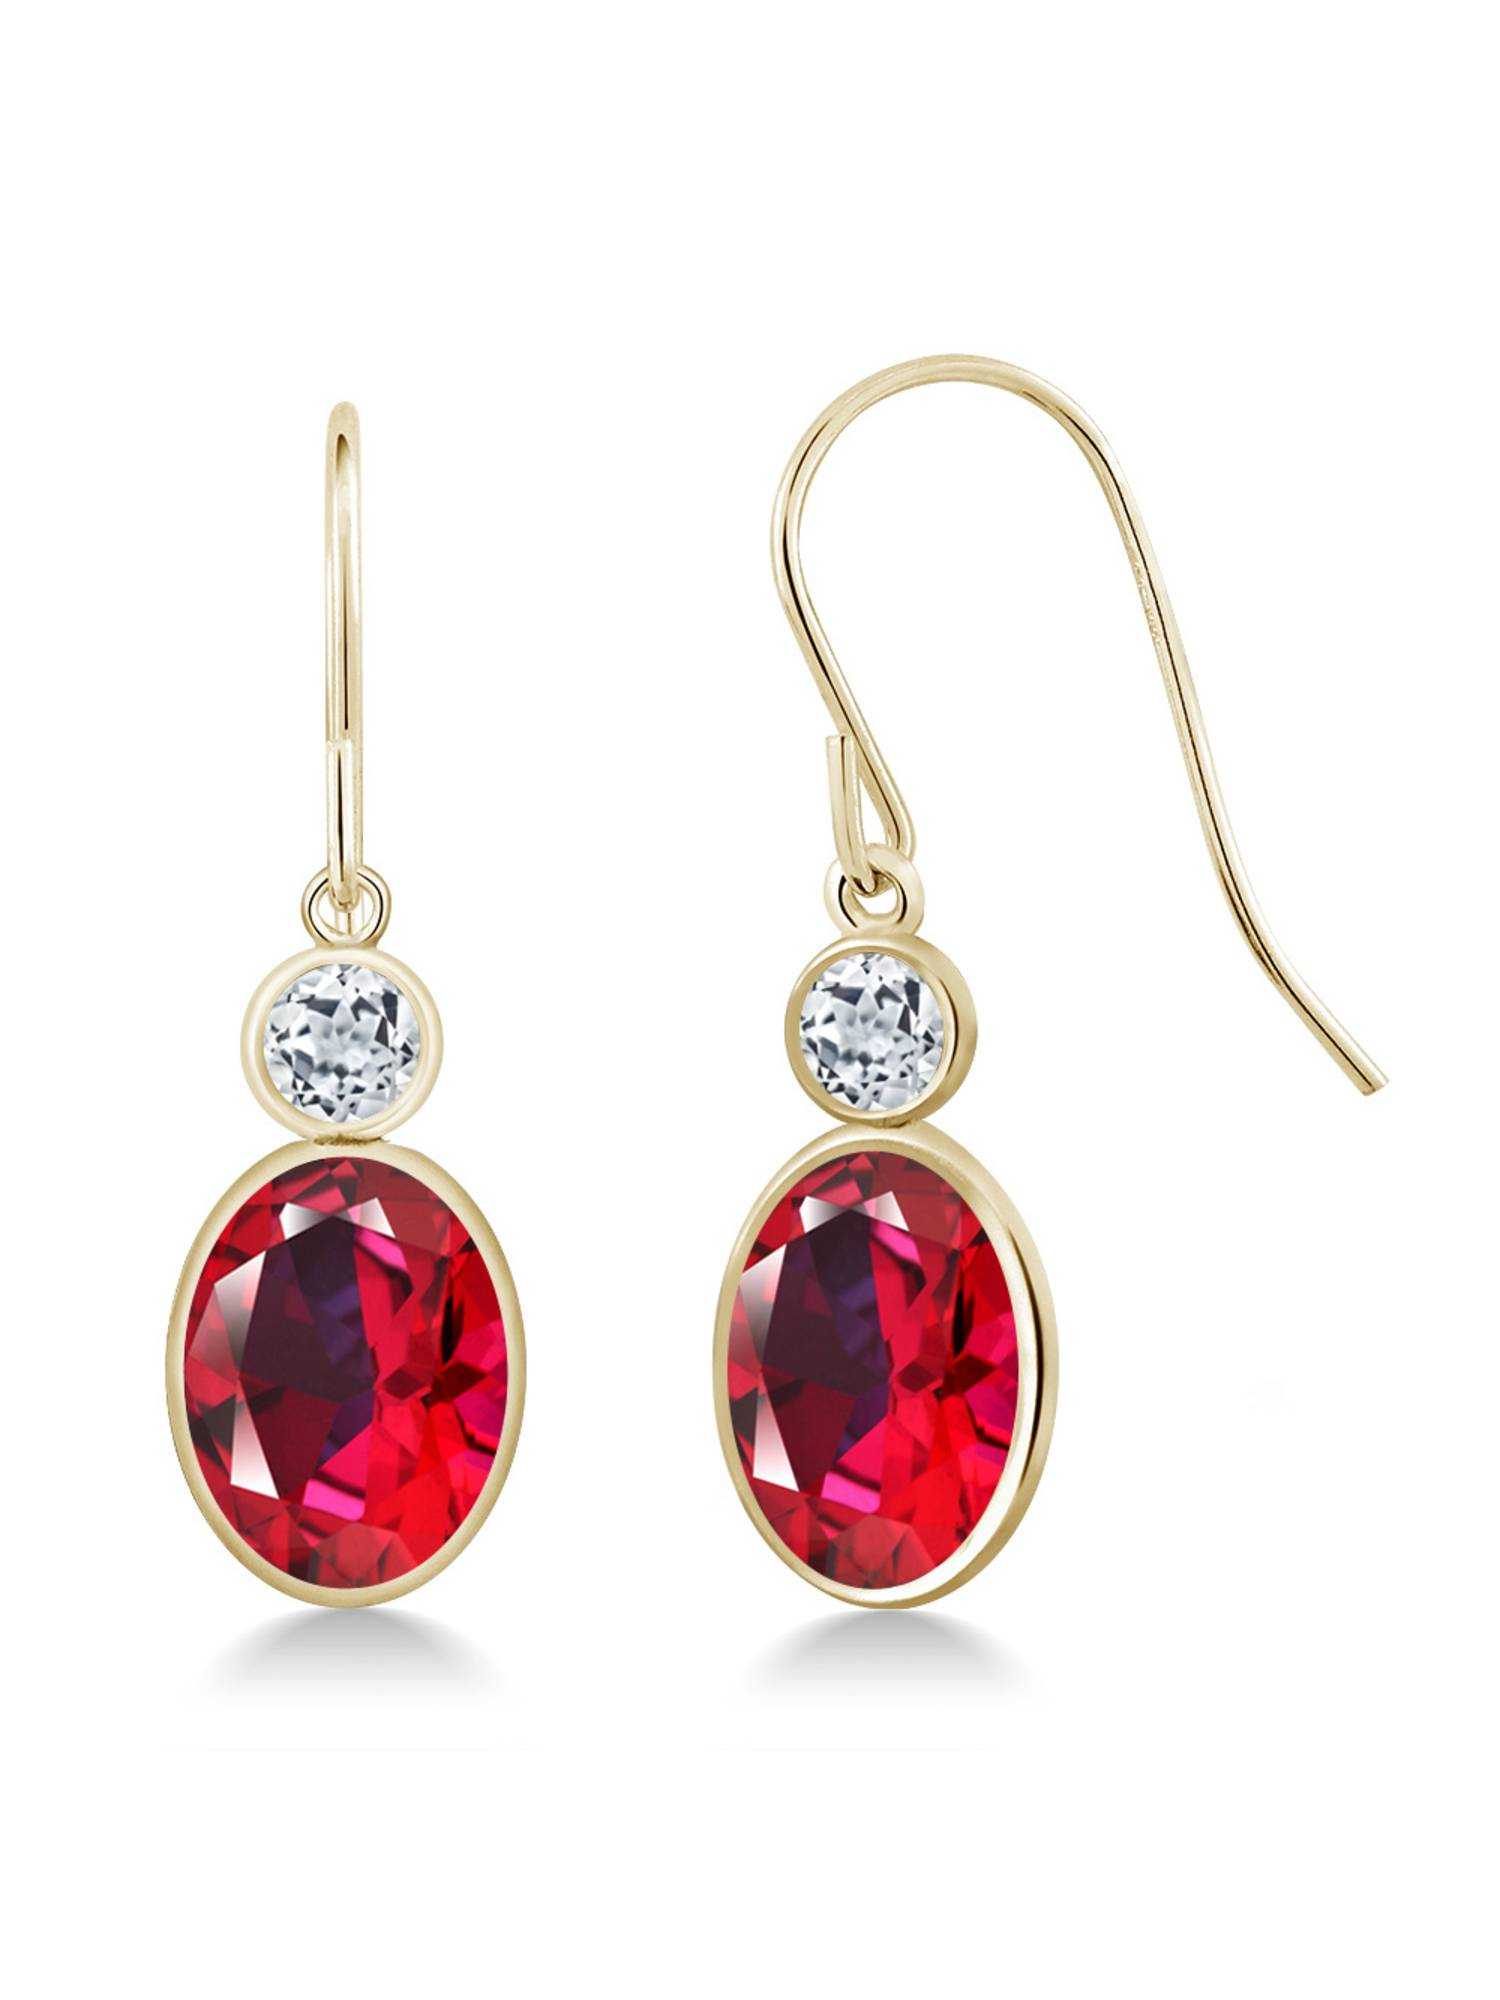 14K Yellow Gold Earrings Topaz Set with Oval Blazing Red Topaz from Swarovski by